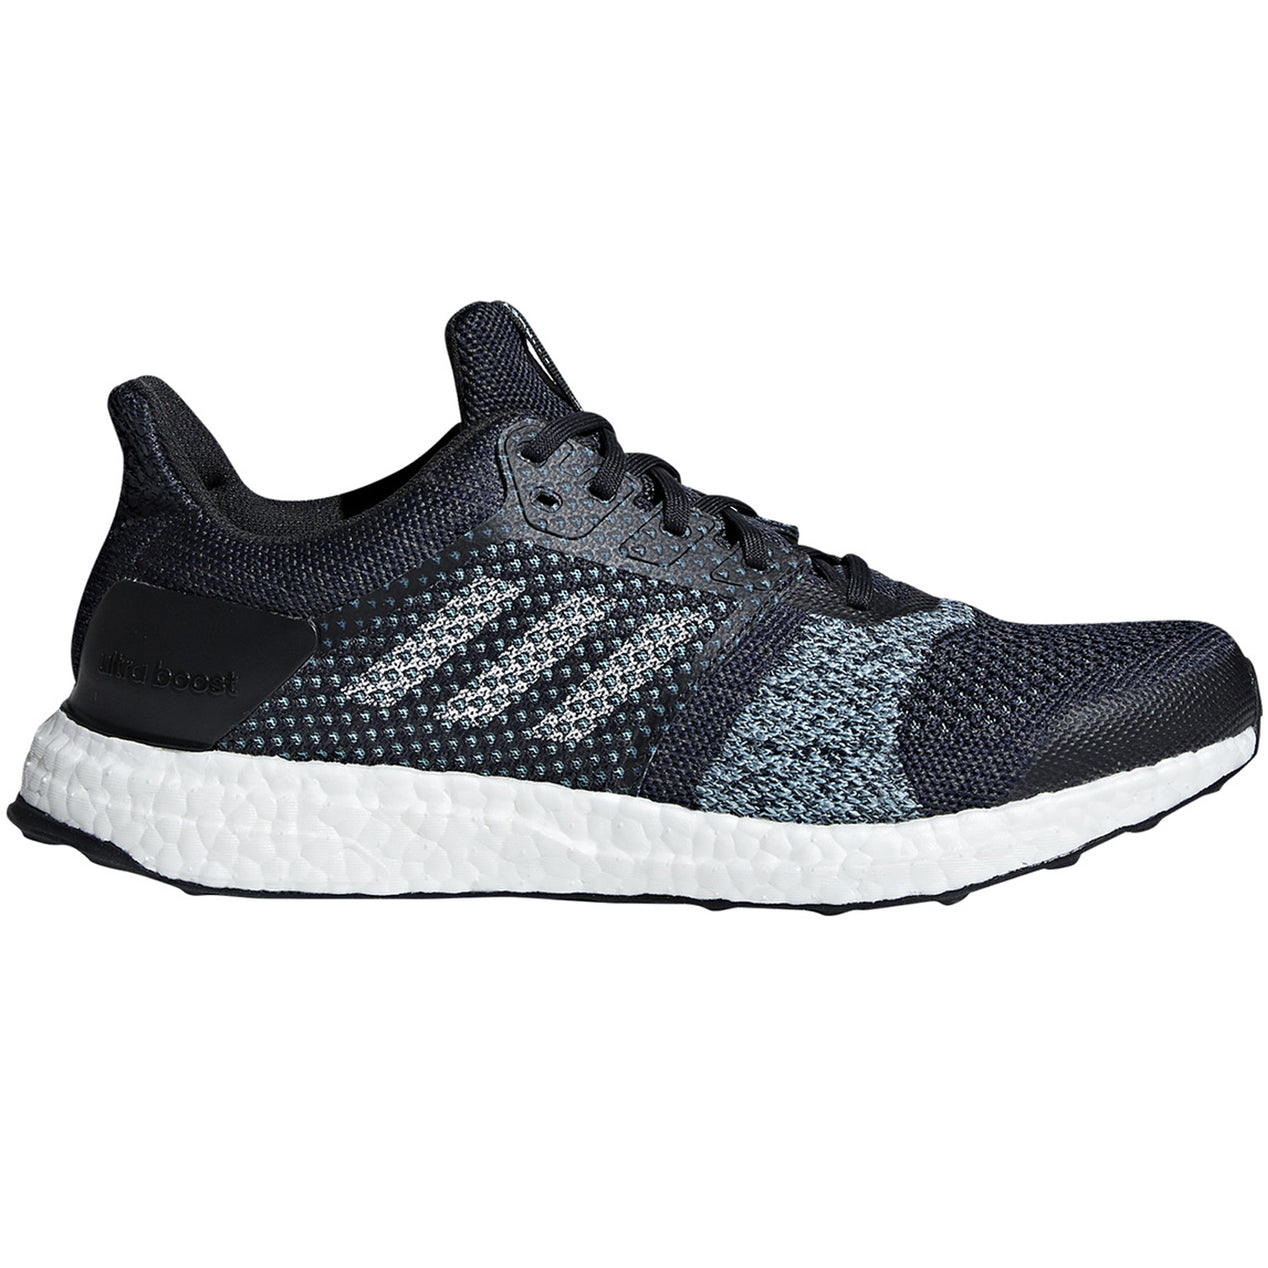 7f691b124e8416 Adidas Ultraboost St Parley Running Shoes - Men s